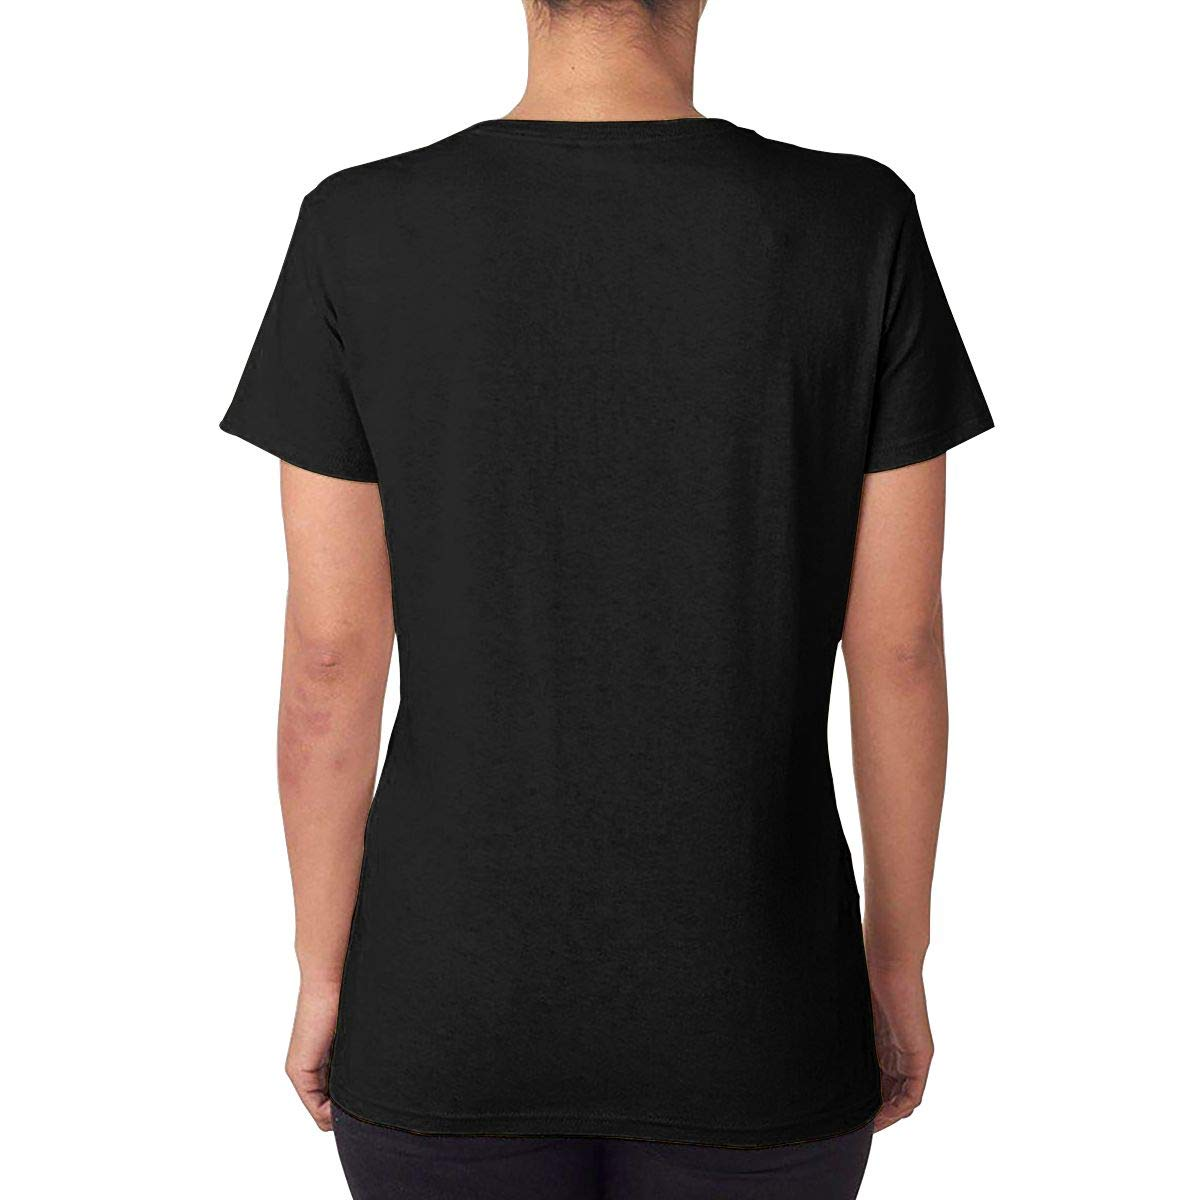 T-Shirts for Summer Iration 4 Womens Scoop Neck Short Sleeve Tee Tops Cotton Printed Casual Tees Black